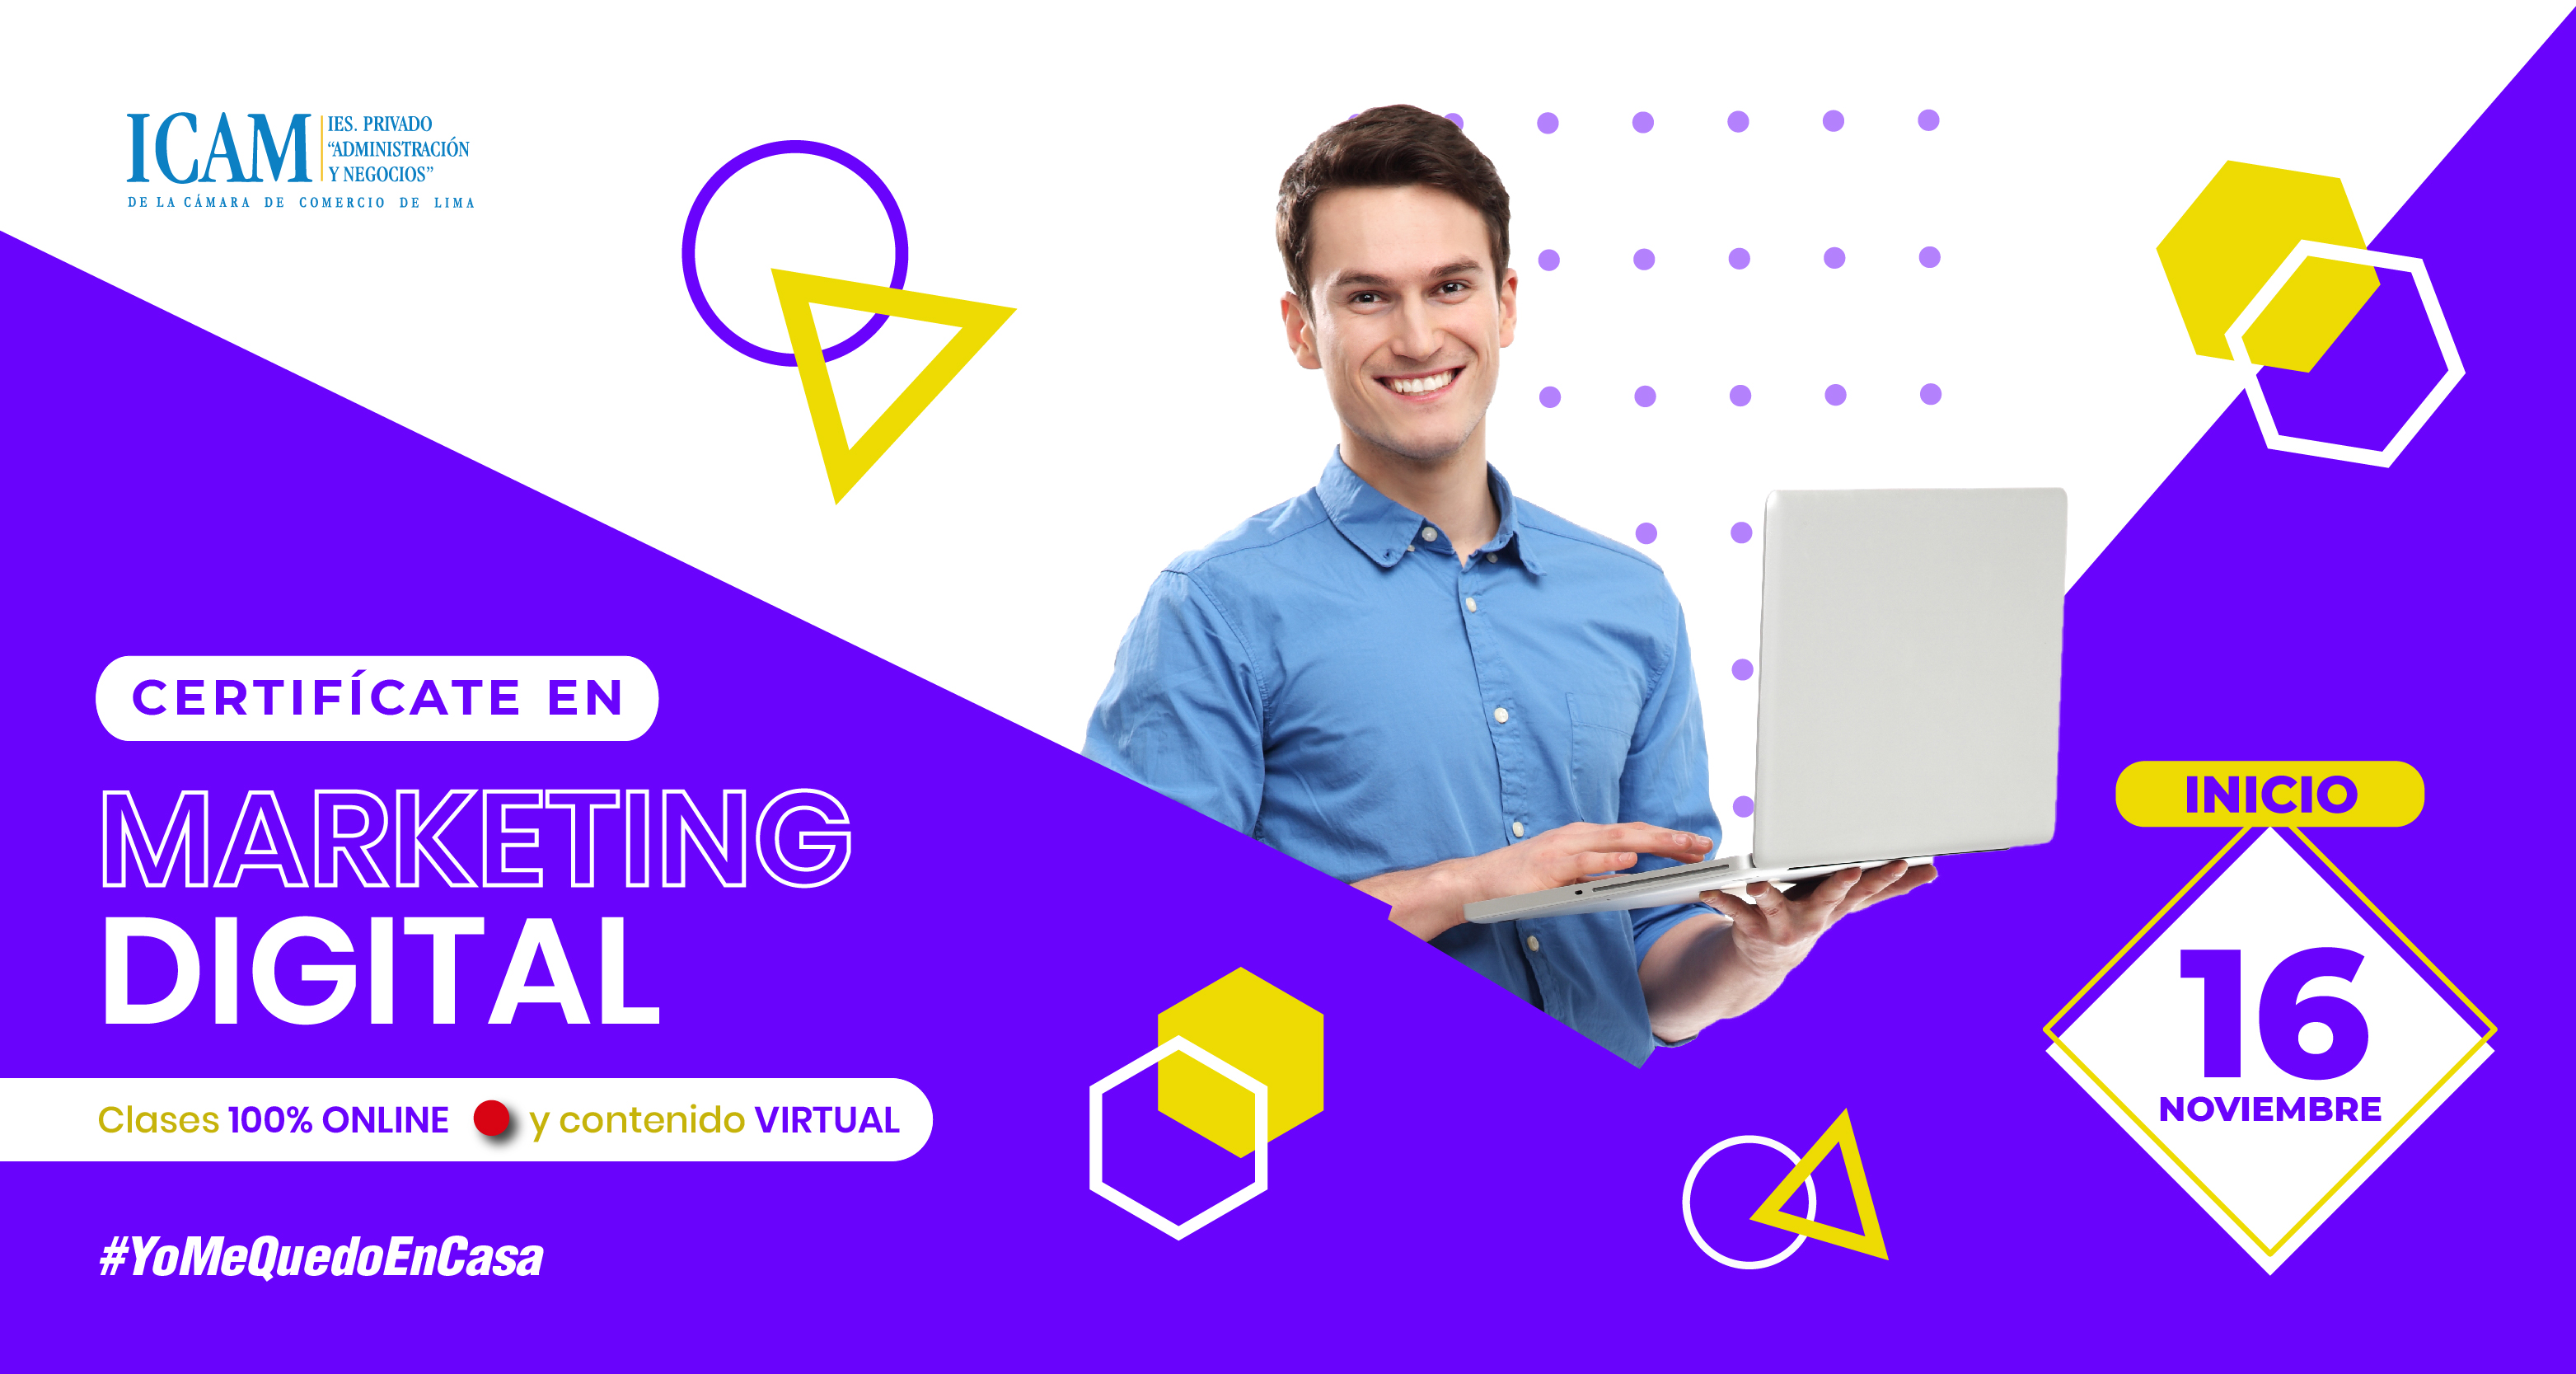 Certifícate en Marketing Digital